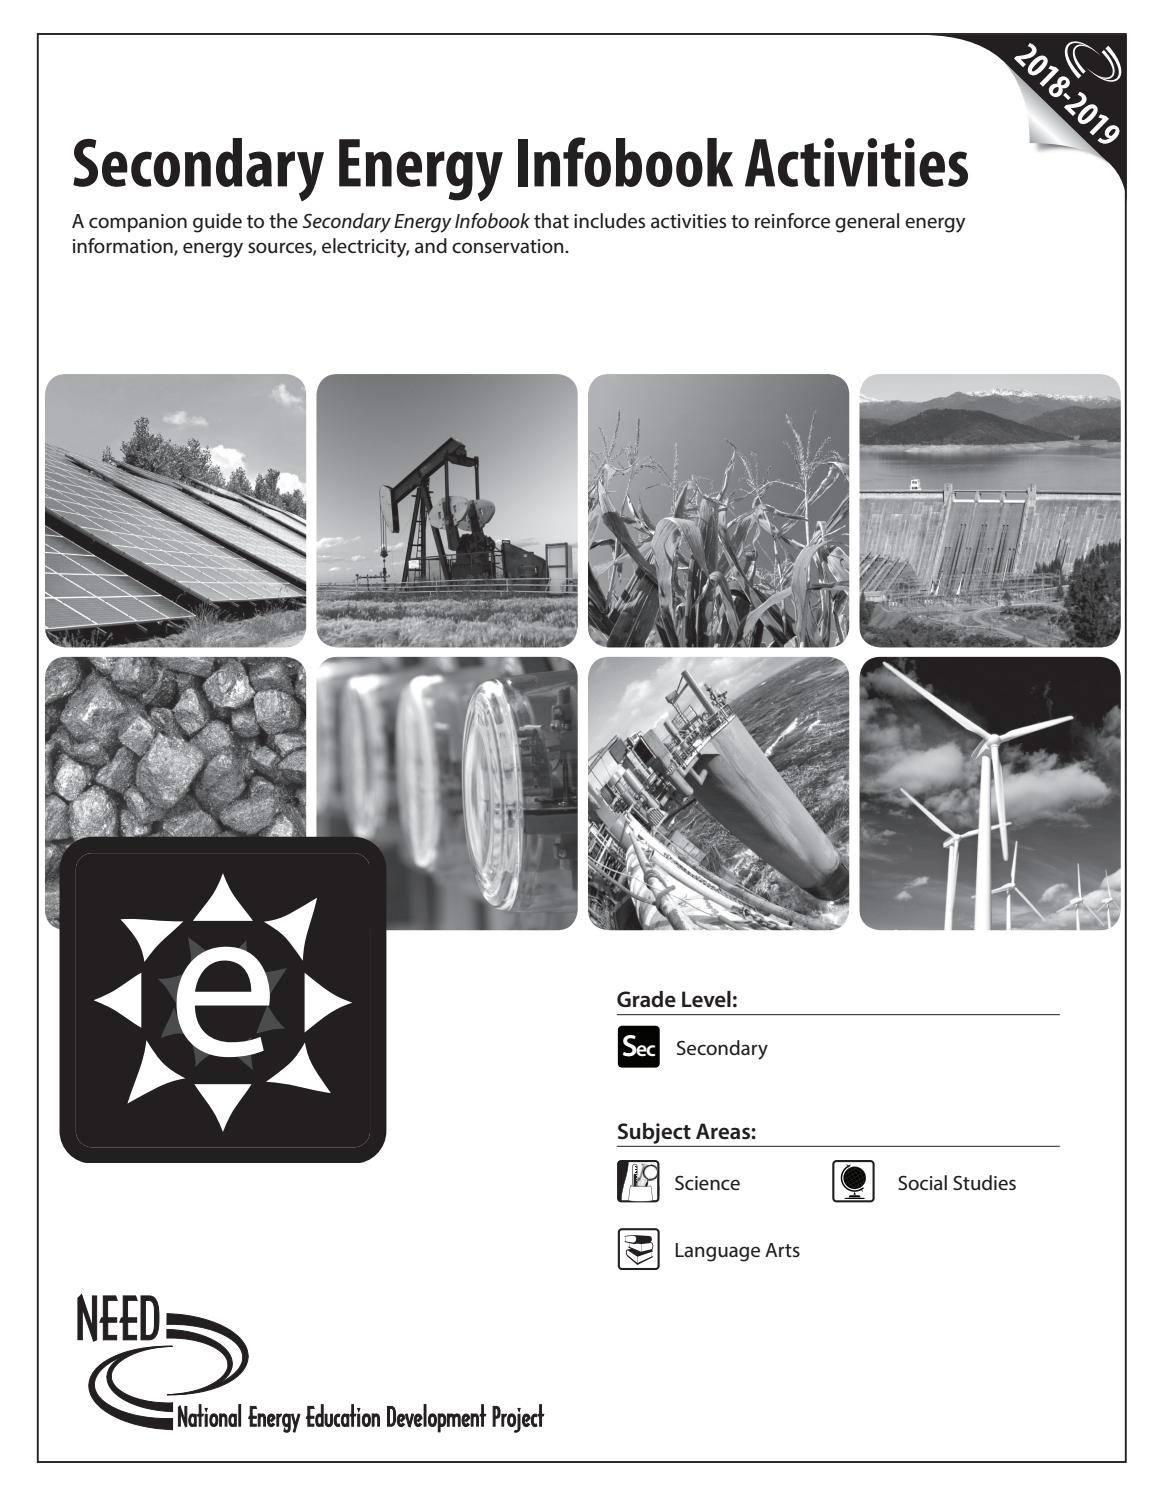 Electricity Worksheets for Middle School Secondary Energy Activities Infobook by Need Project issuu